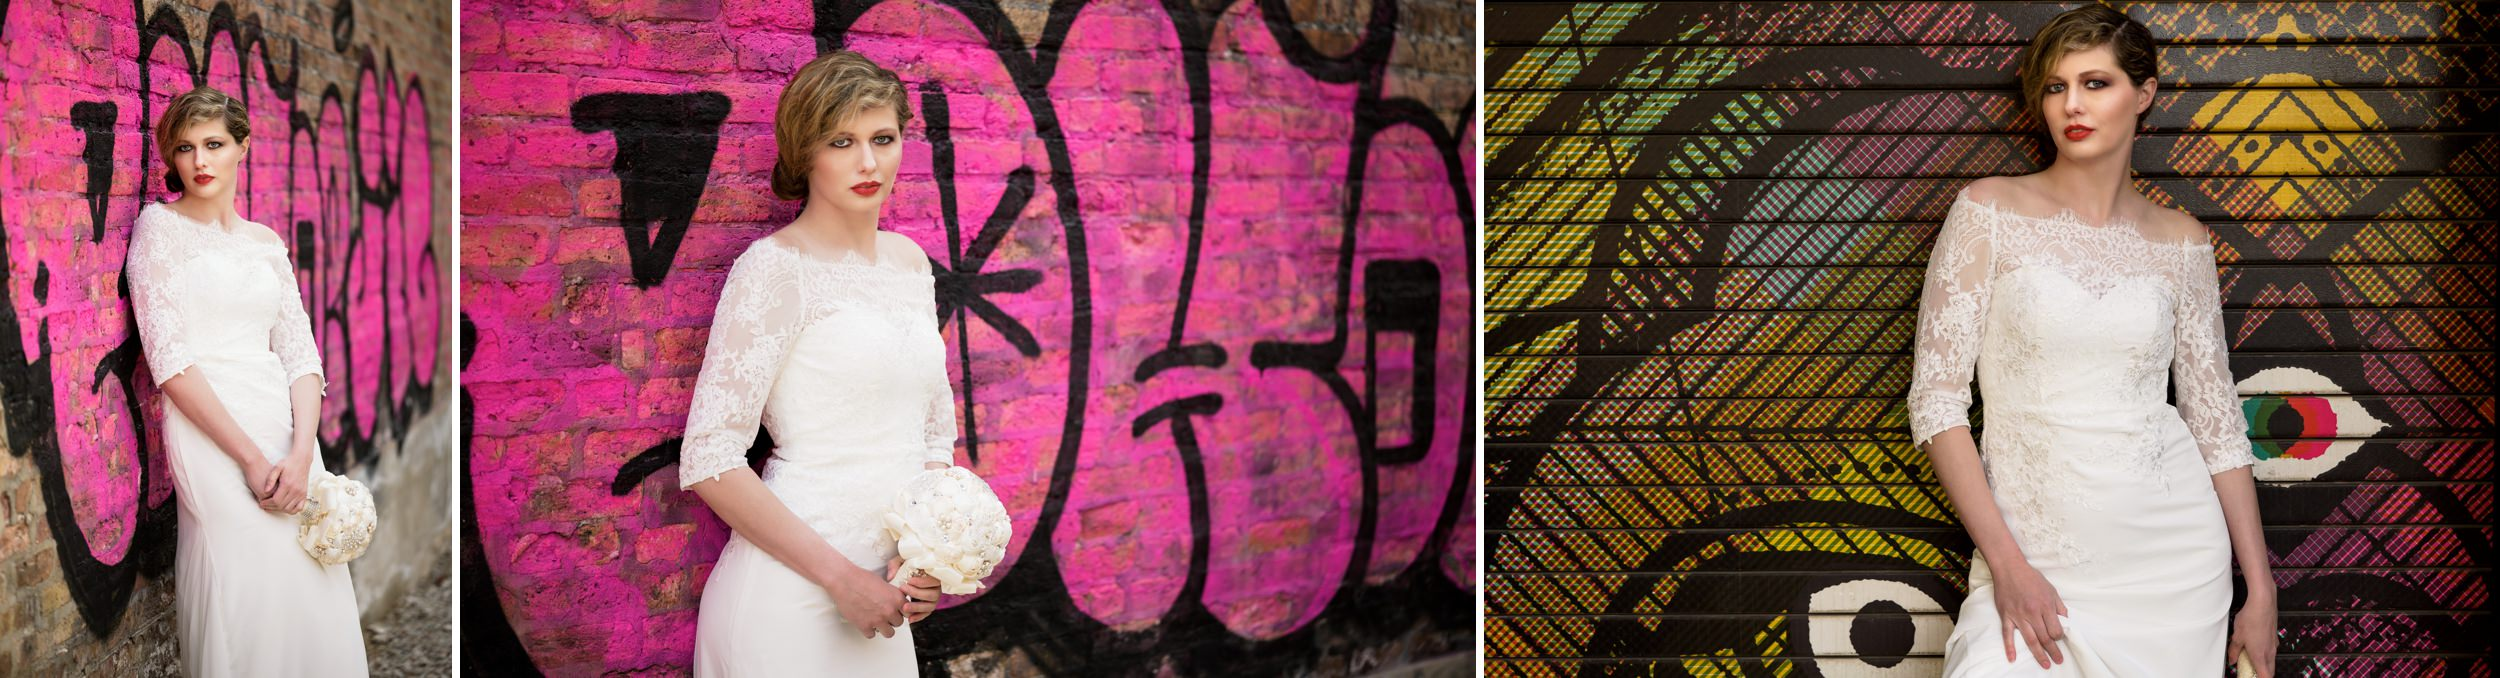 Bridal portraits featuring the colorful graffiti art of the Chicago Bucktown / Wicker park area.